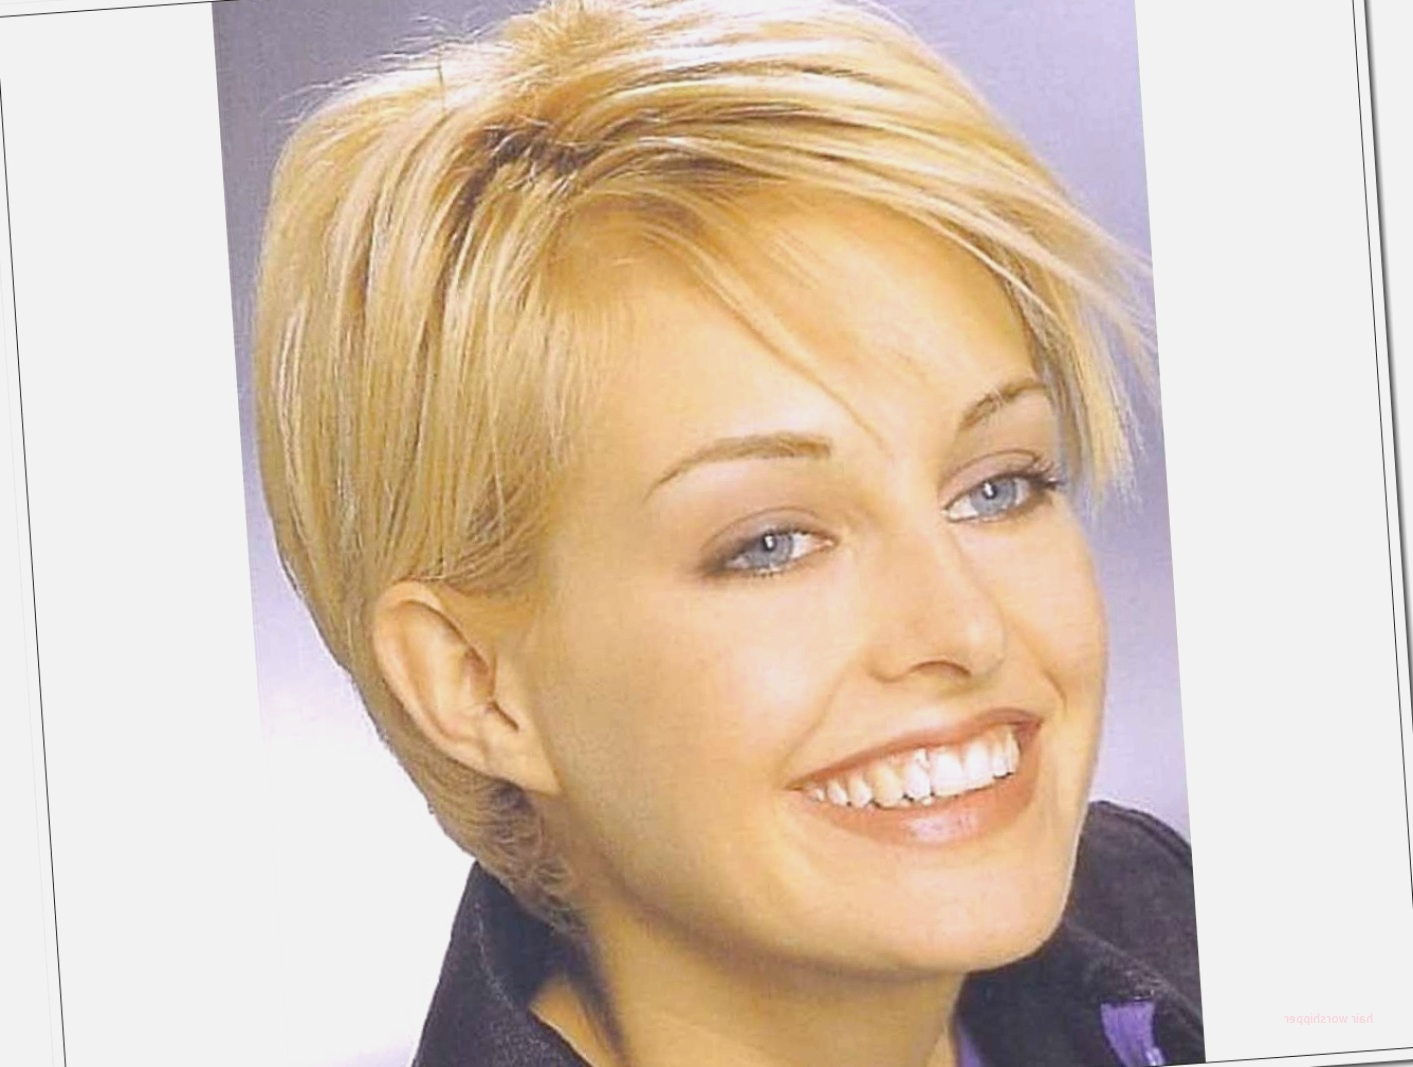 Beautiful Hairstyles For Over 50S Uk 2015 – Hair Worshipper For Over 50S Hairstyles For Short Hair (View 21 of 25)